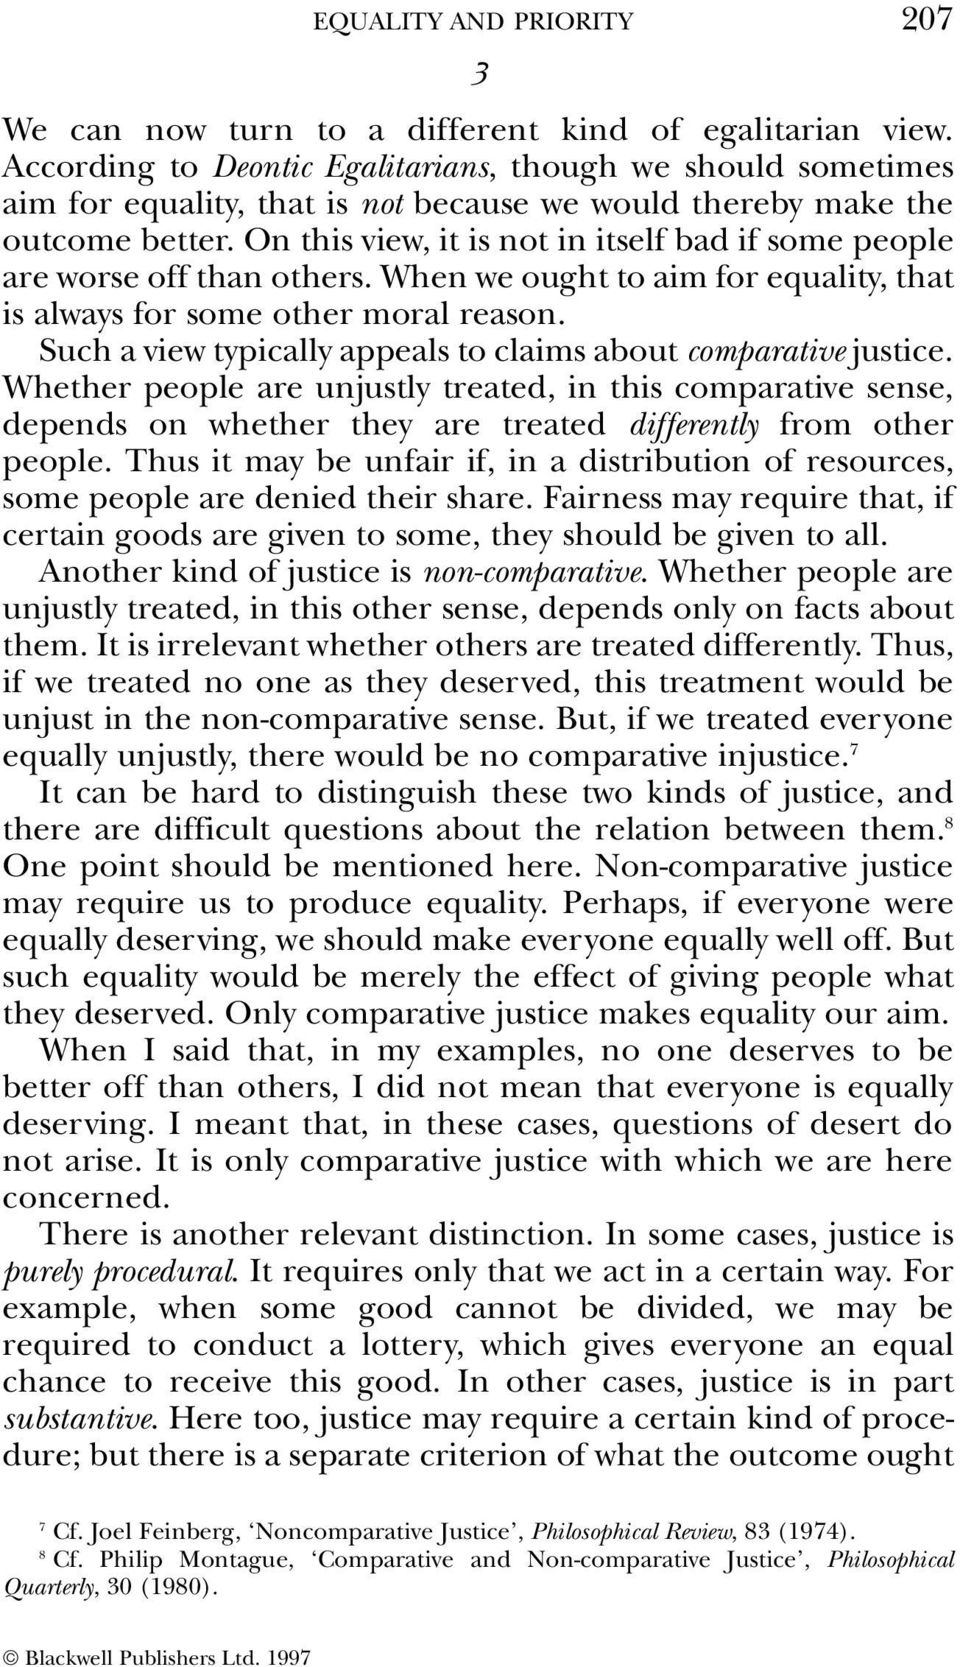 On this view, it is not in itself bad if some people are worse off than others. When we ought to aim for equality, that is always for some other moral reason.